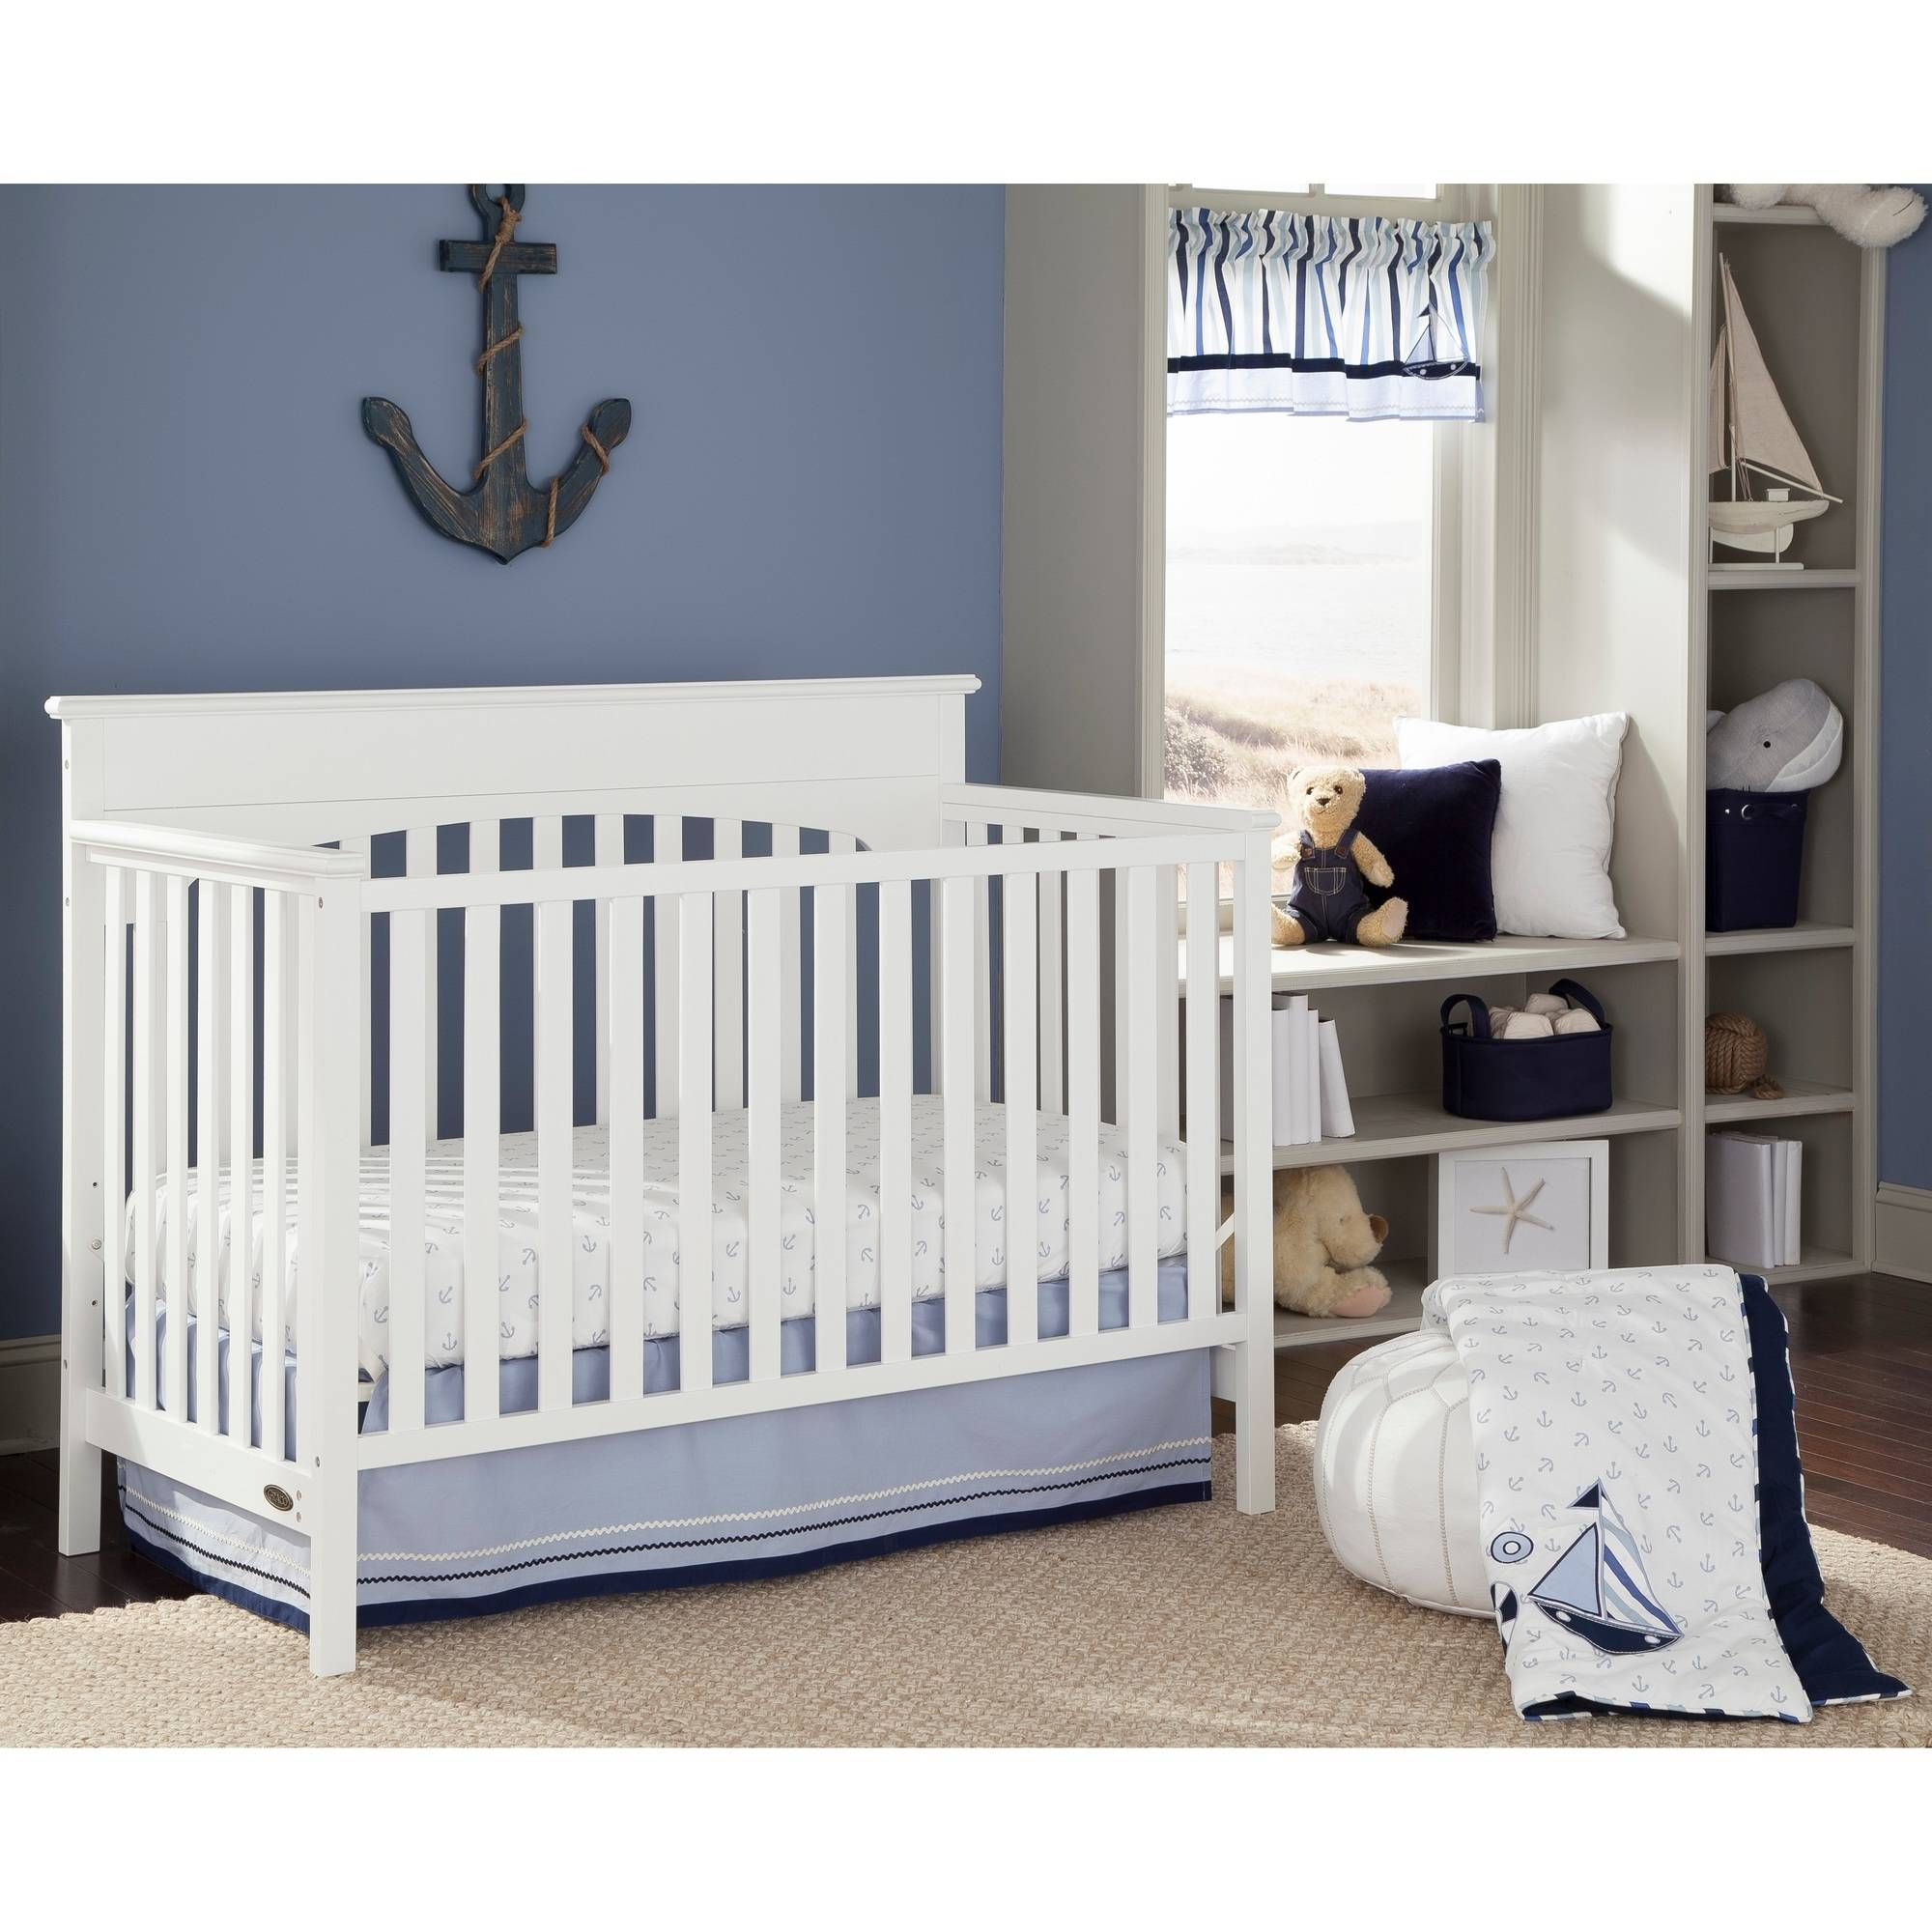 cnc crib products royal left conversion n changer delta props children cribs convertible grey